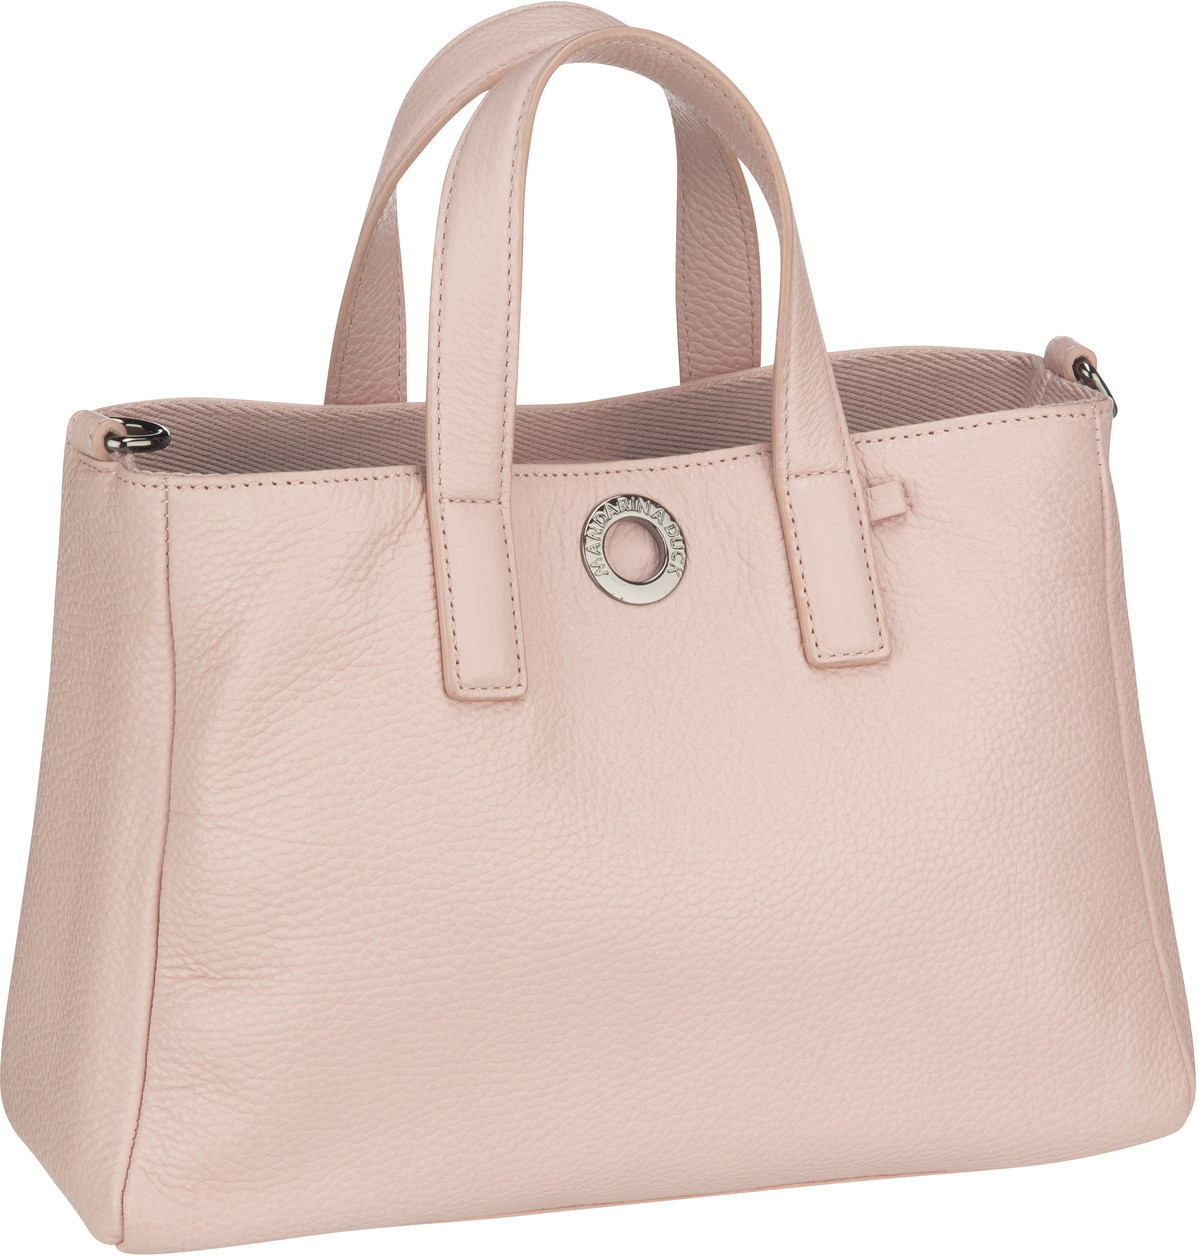 Handtasche Mellow Leather Tote Bag FZT28 Rose Metal